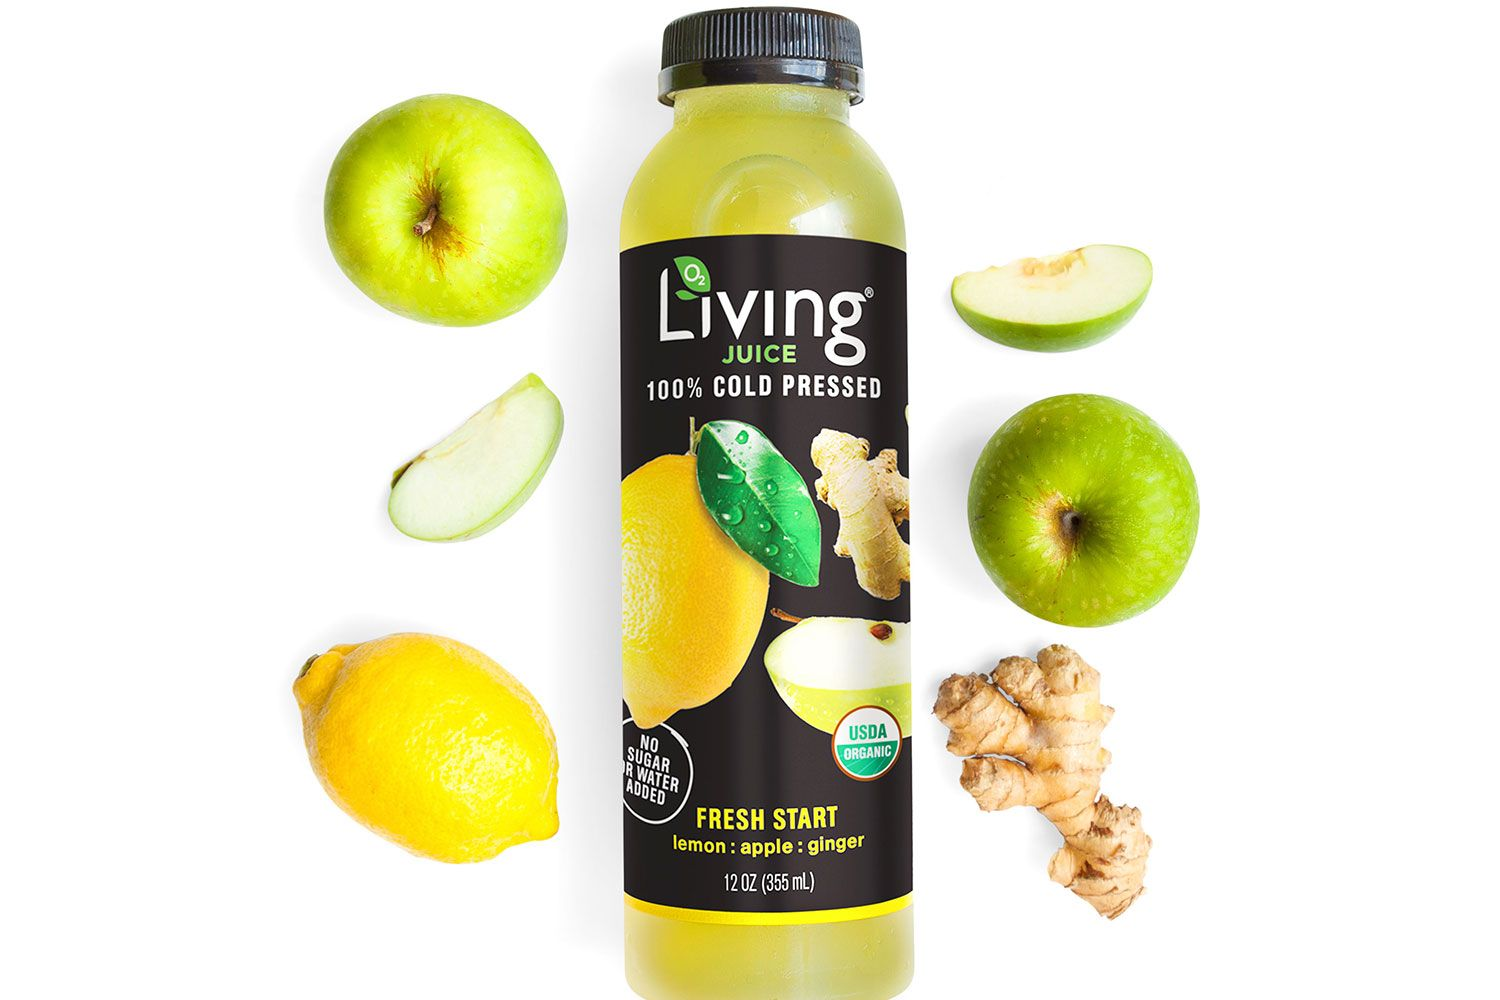 World According to Gayle January 2019 - Living Juice as seen in O, the Oprah Magazine